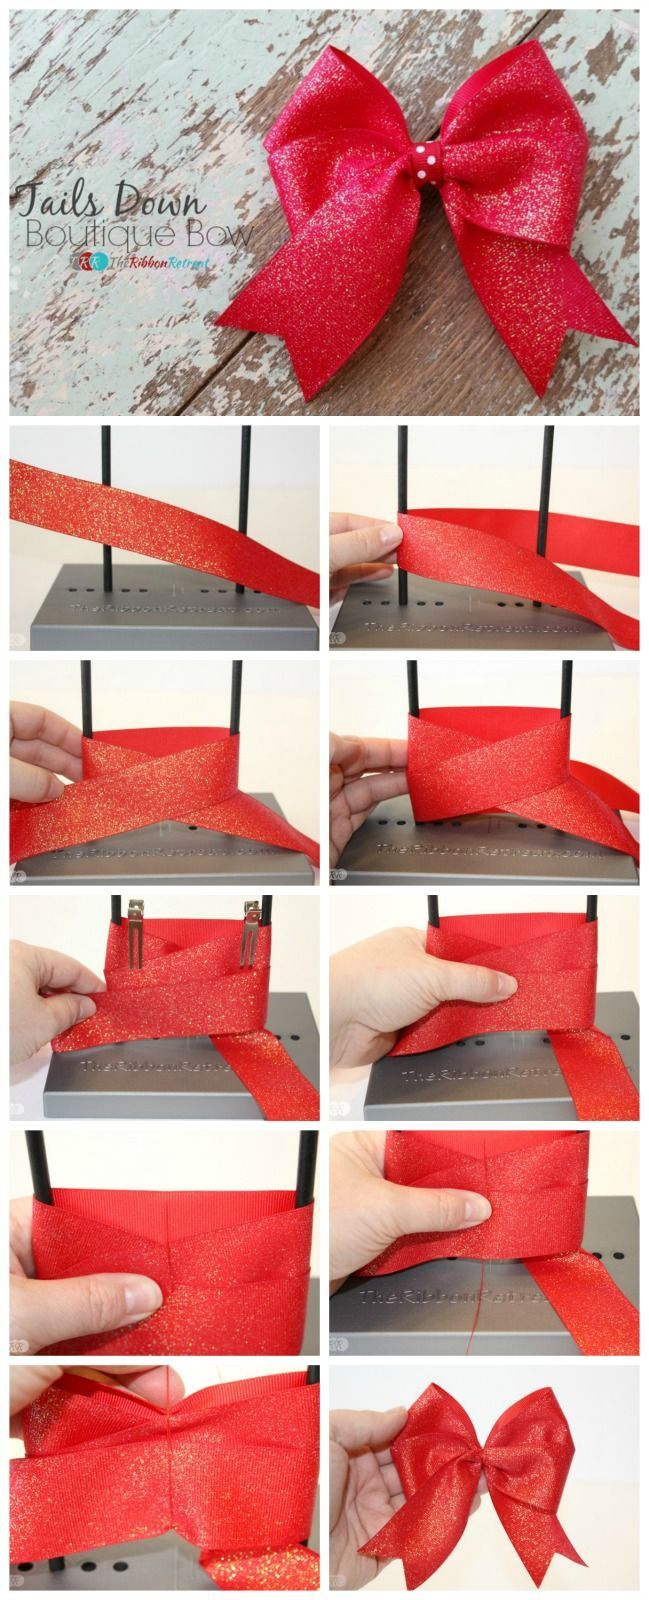 How To Make A Tails Down Boutique Bow The Ribbon Retreat